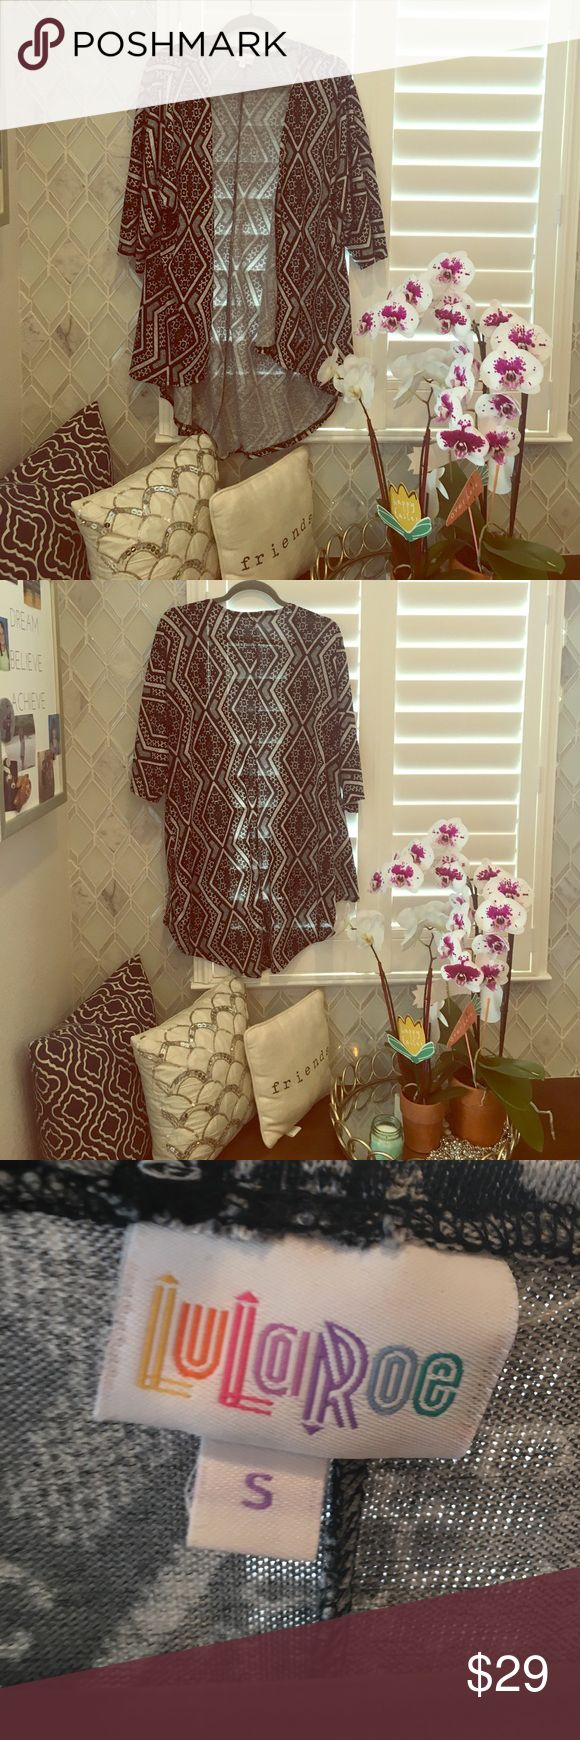 Lularoe Lindsay S tribal cover up Beautiful tribal Lindsay worn a handful of times size small. Perfect for summer. Looks great over a bathing suit! LuLaRoe Sweaters Cardigans